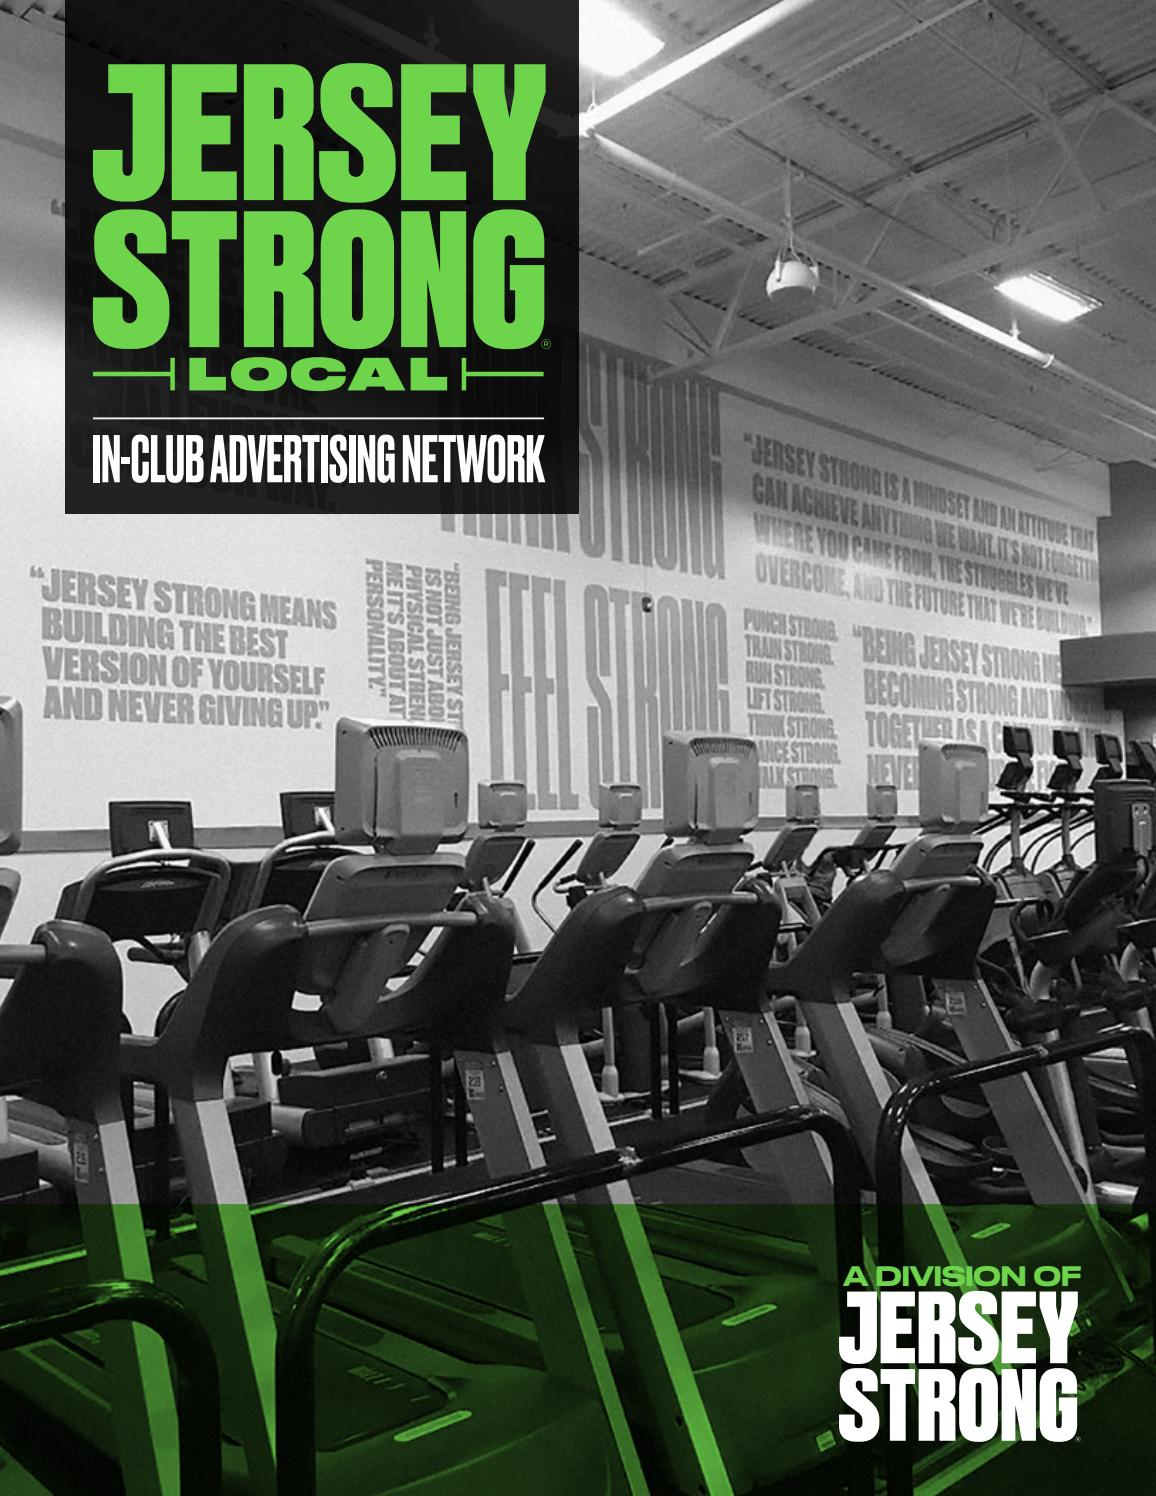 Jersey Strong Local By Michael Jennings Issuu